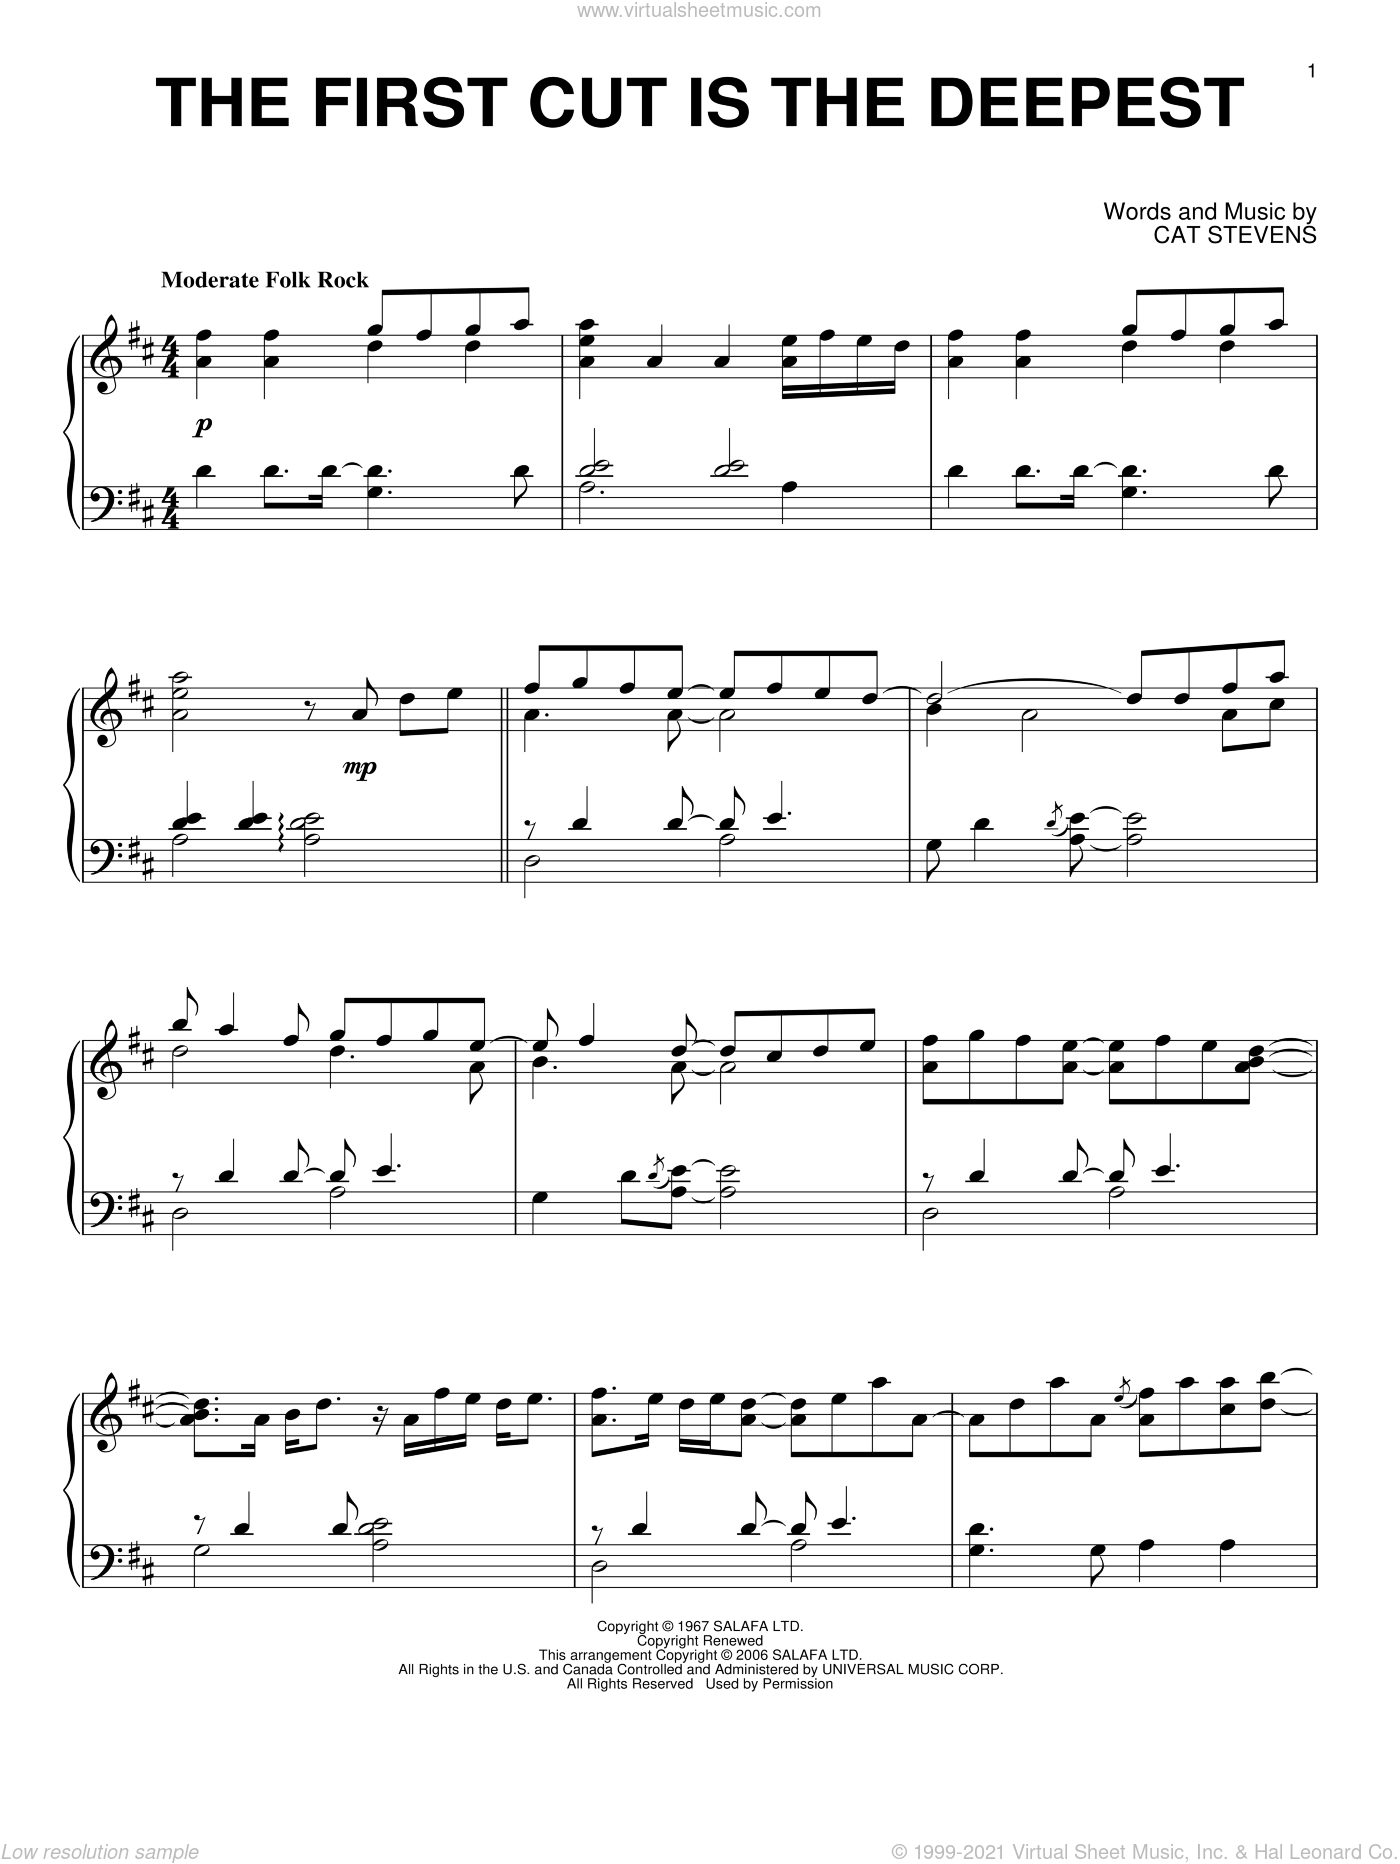 The First Cut Is The Deepest sheet music for piano solo by Sheryl Crow, Rod Stewart and Cat Stevens, intermediate. Score Image Preview.